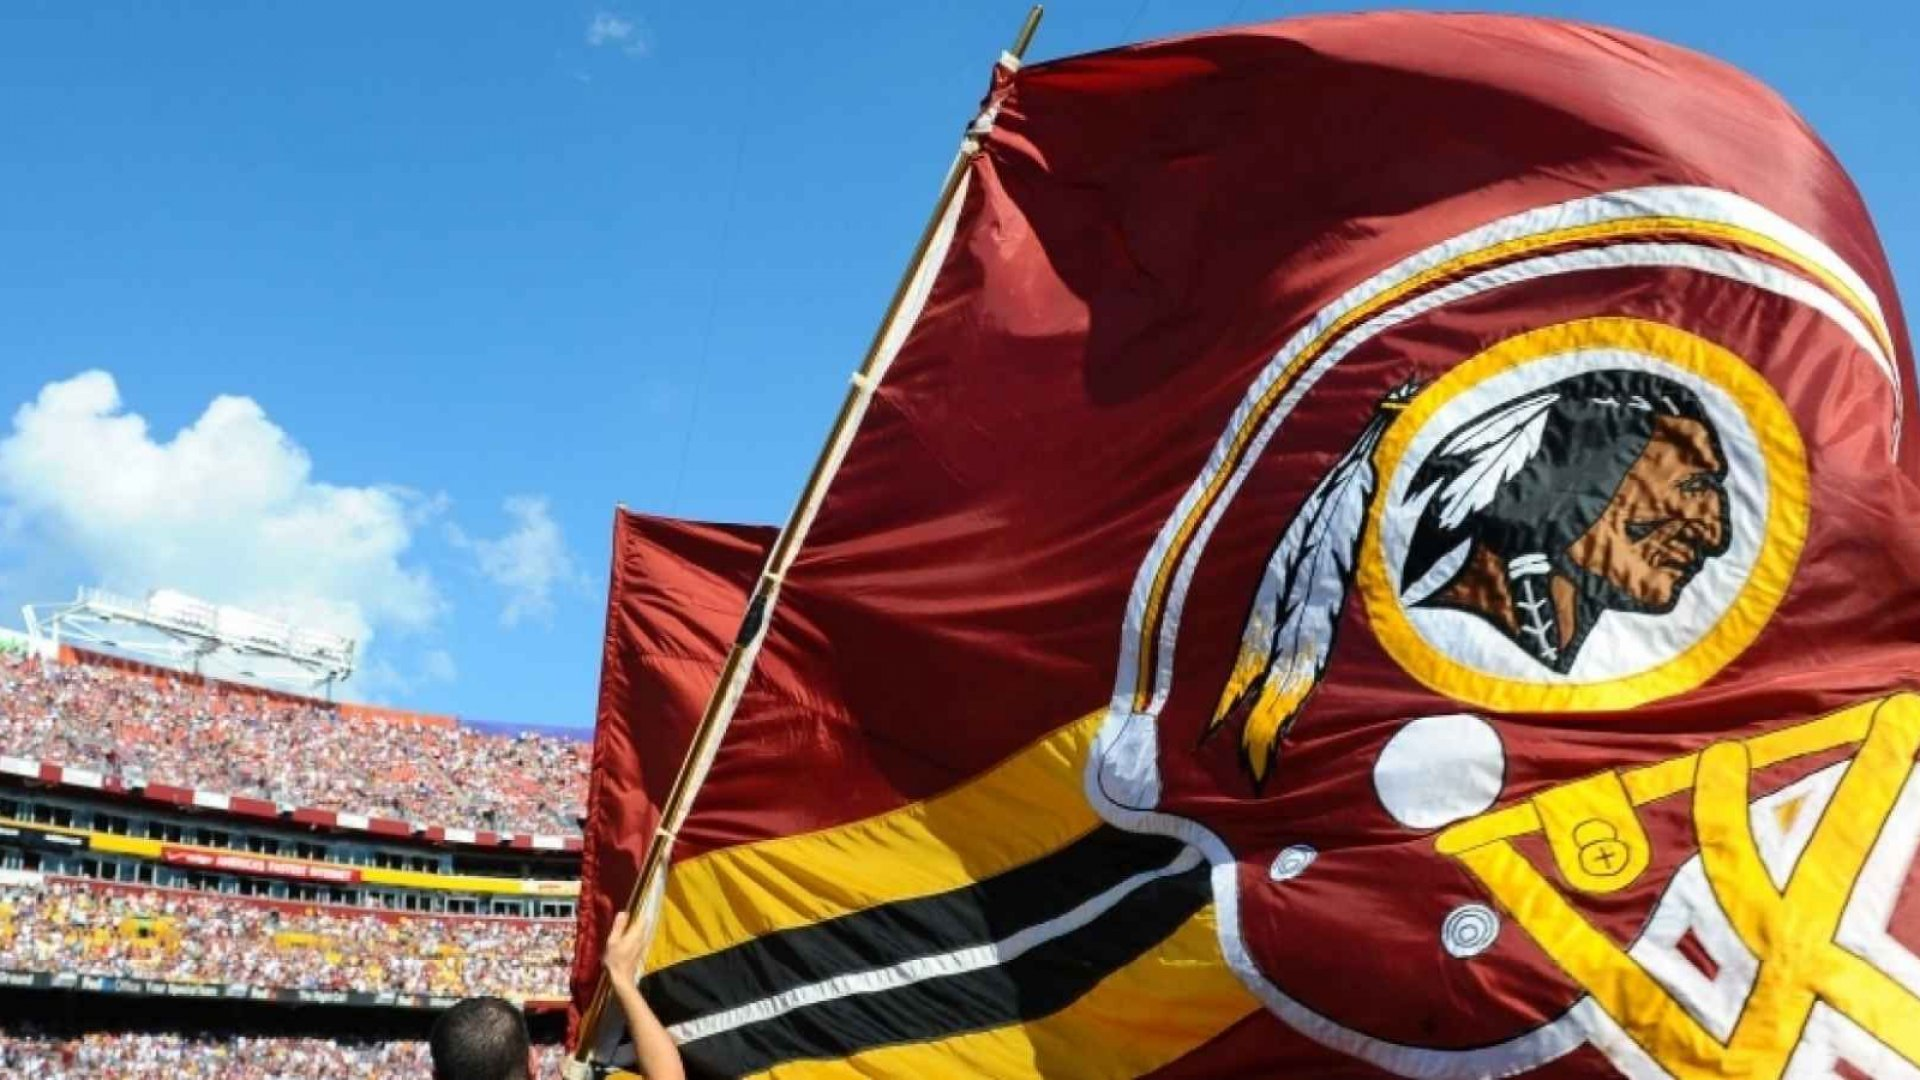 These 2 NFL Teams Have the Biggest Brand Problem